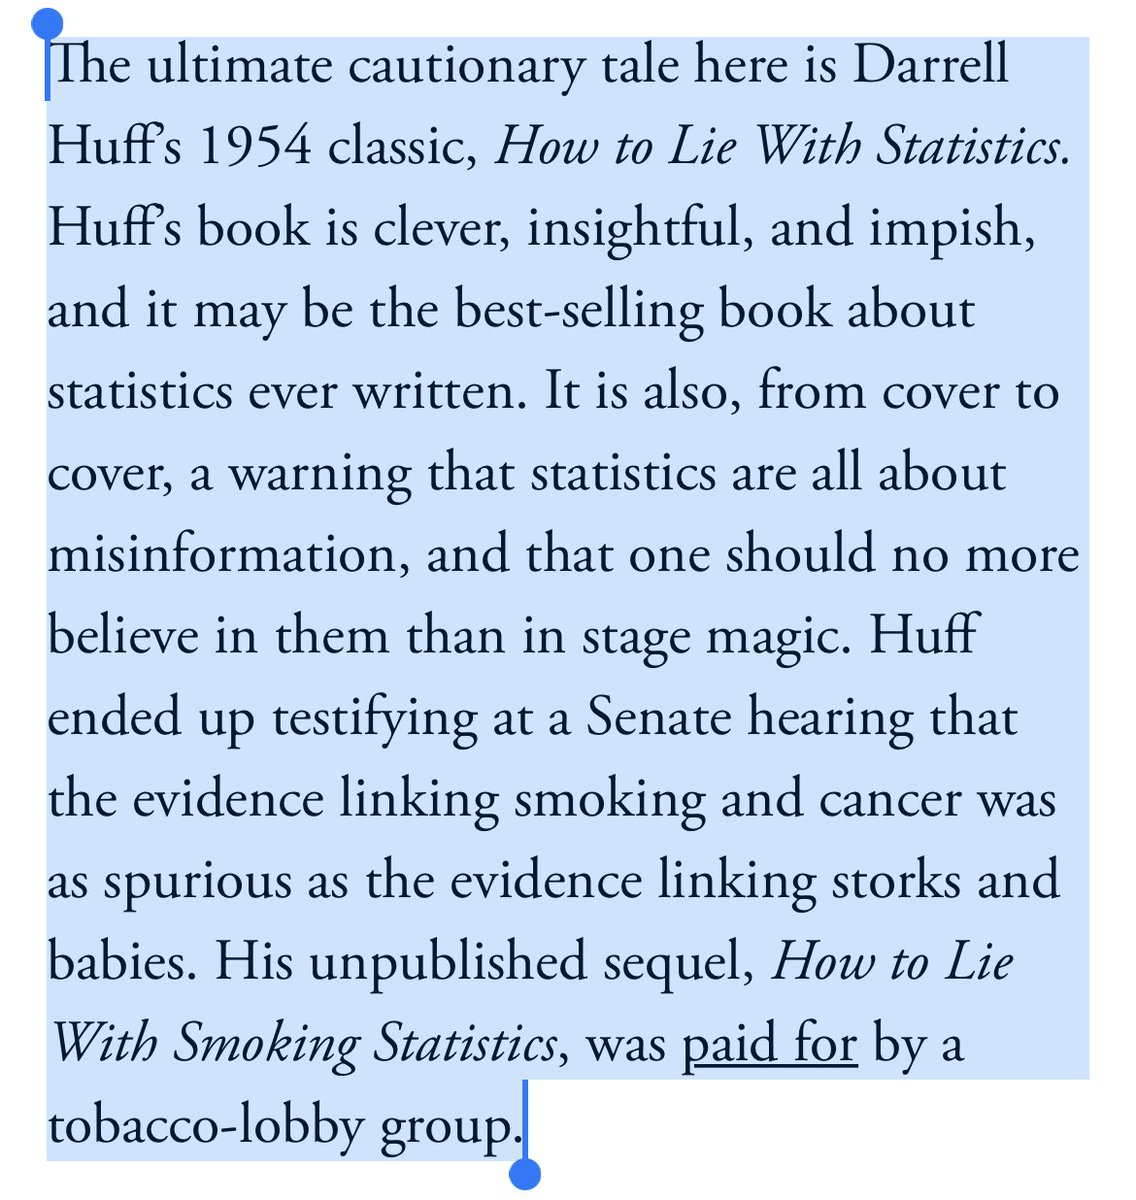 Good article about disbelief being at the root of belief in conspiracy theories from @TimHarford — did not know this bit before! https://t.co/1UlLs43STg https://t.co/Be5u9nfQZ6